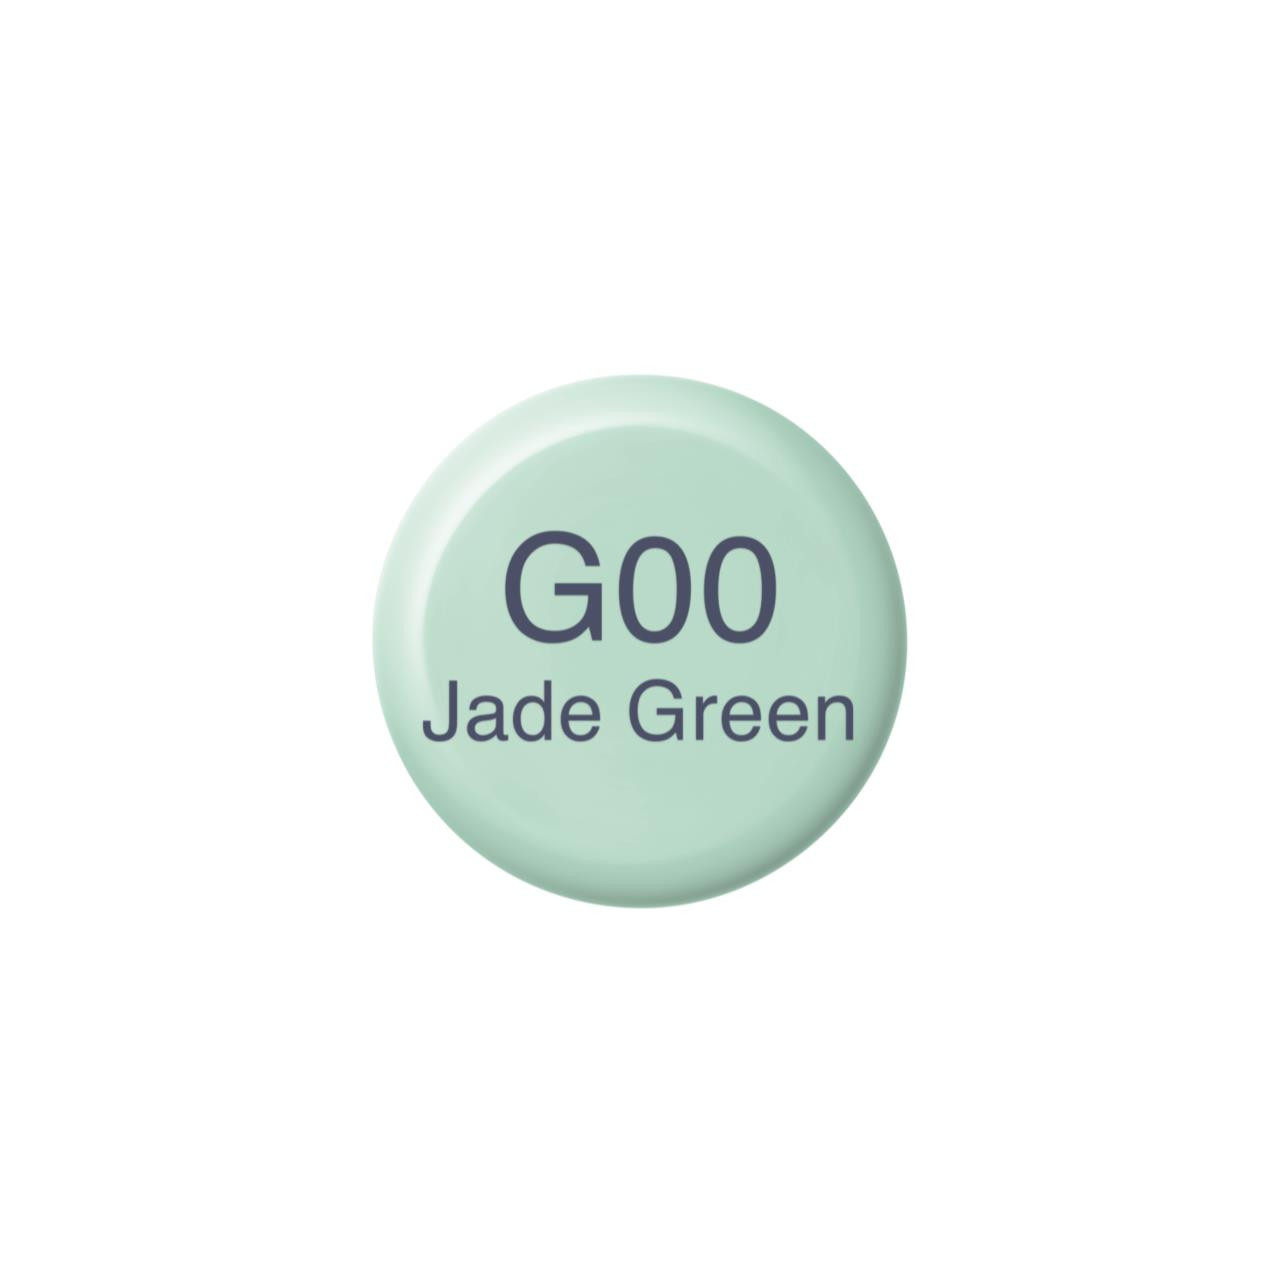 G00 Jade Green, Copic Ink - 4511338057131